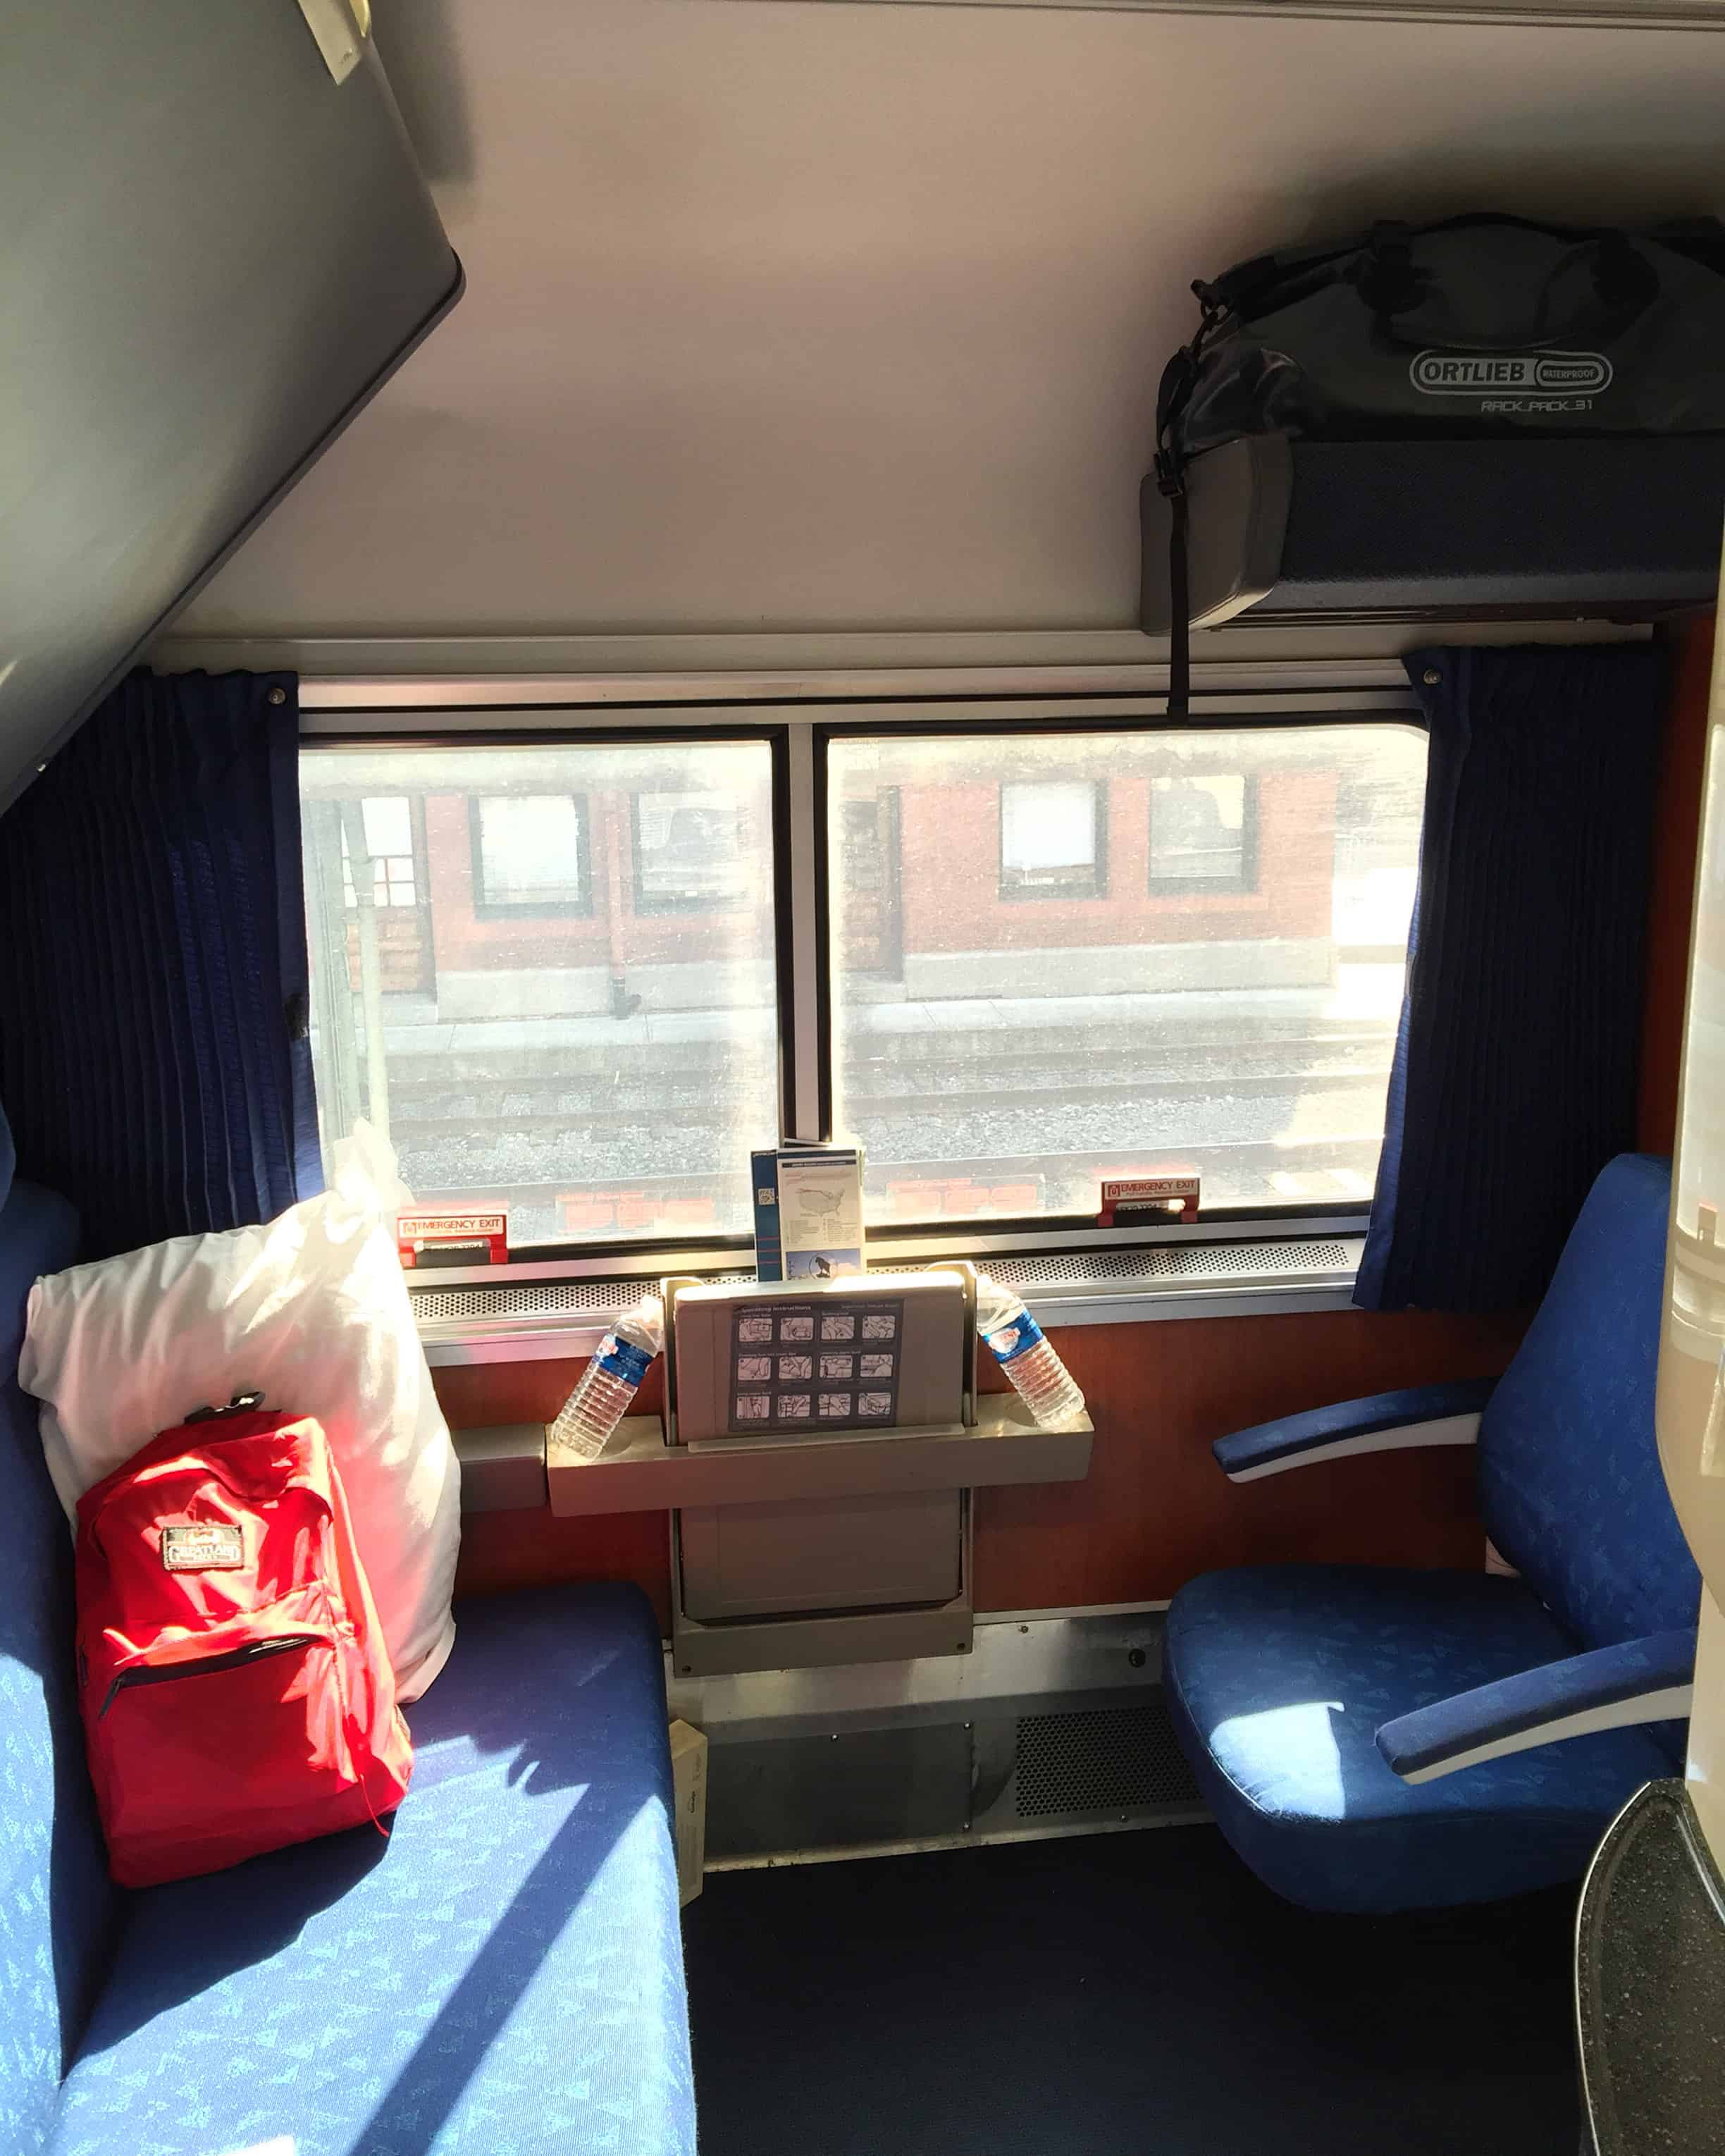 Sweet digs on the train! I'm staying horizontal until they kick me off. First leg to Chicago, then Pittsburgh and My final destination is Philly for the #aiacon16 and then head to Yorktown Virginia, where I'll start bicycling back to Oregon. #sleepercar #mikeriscicaVIP #3daysonatrain #trainrideacrossamerica #bikerideacrossamerica #?